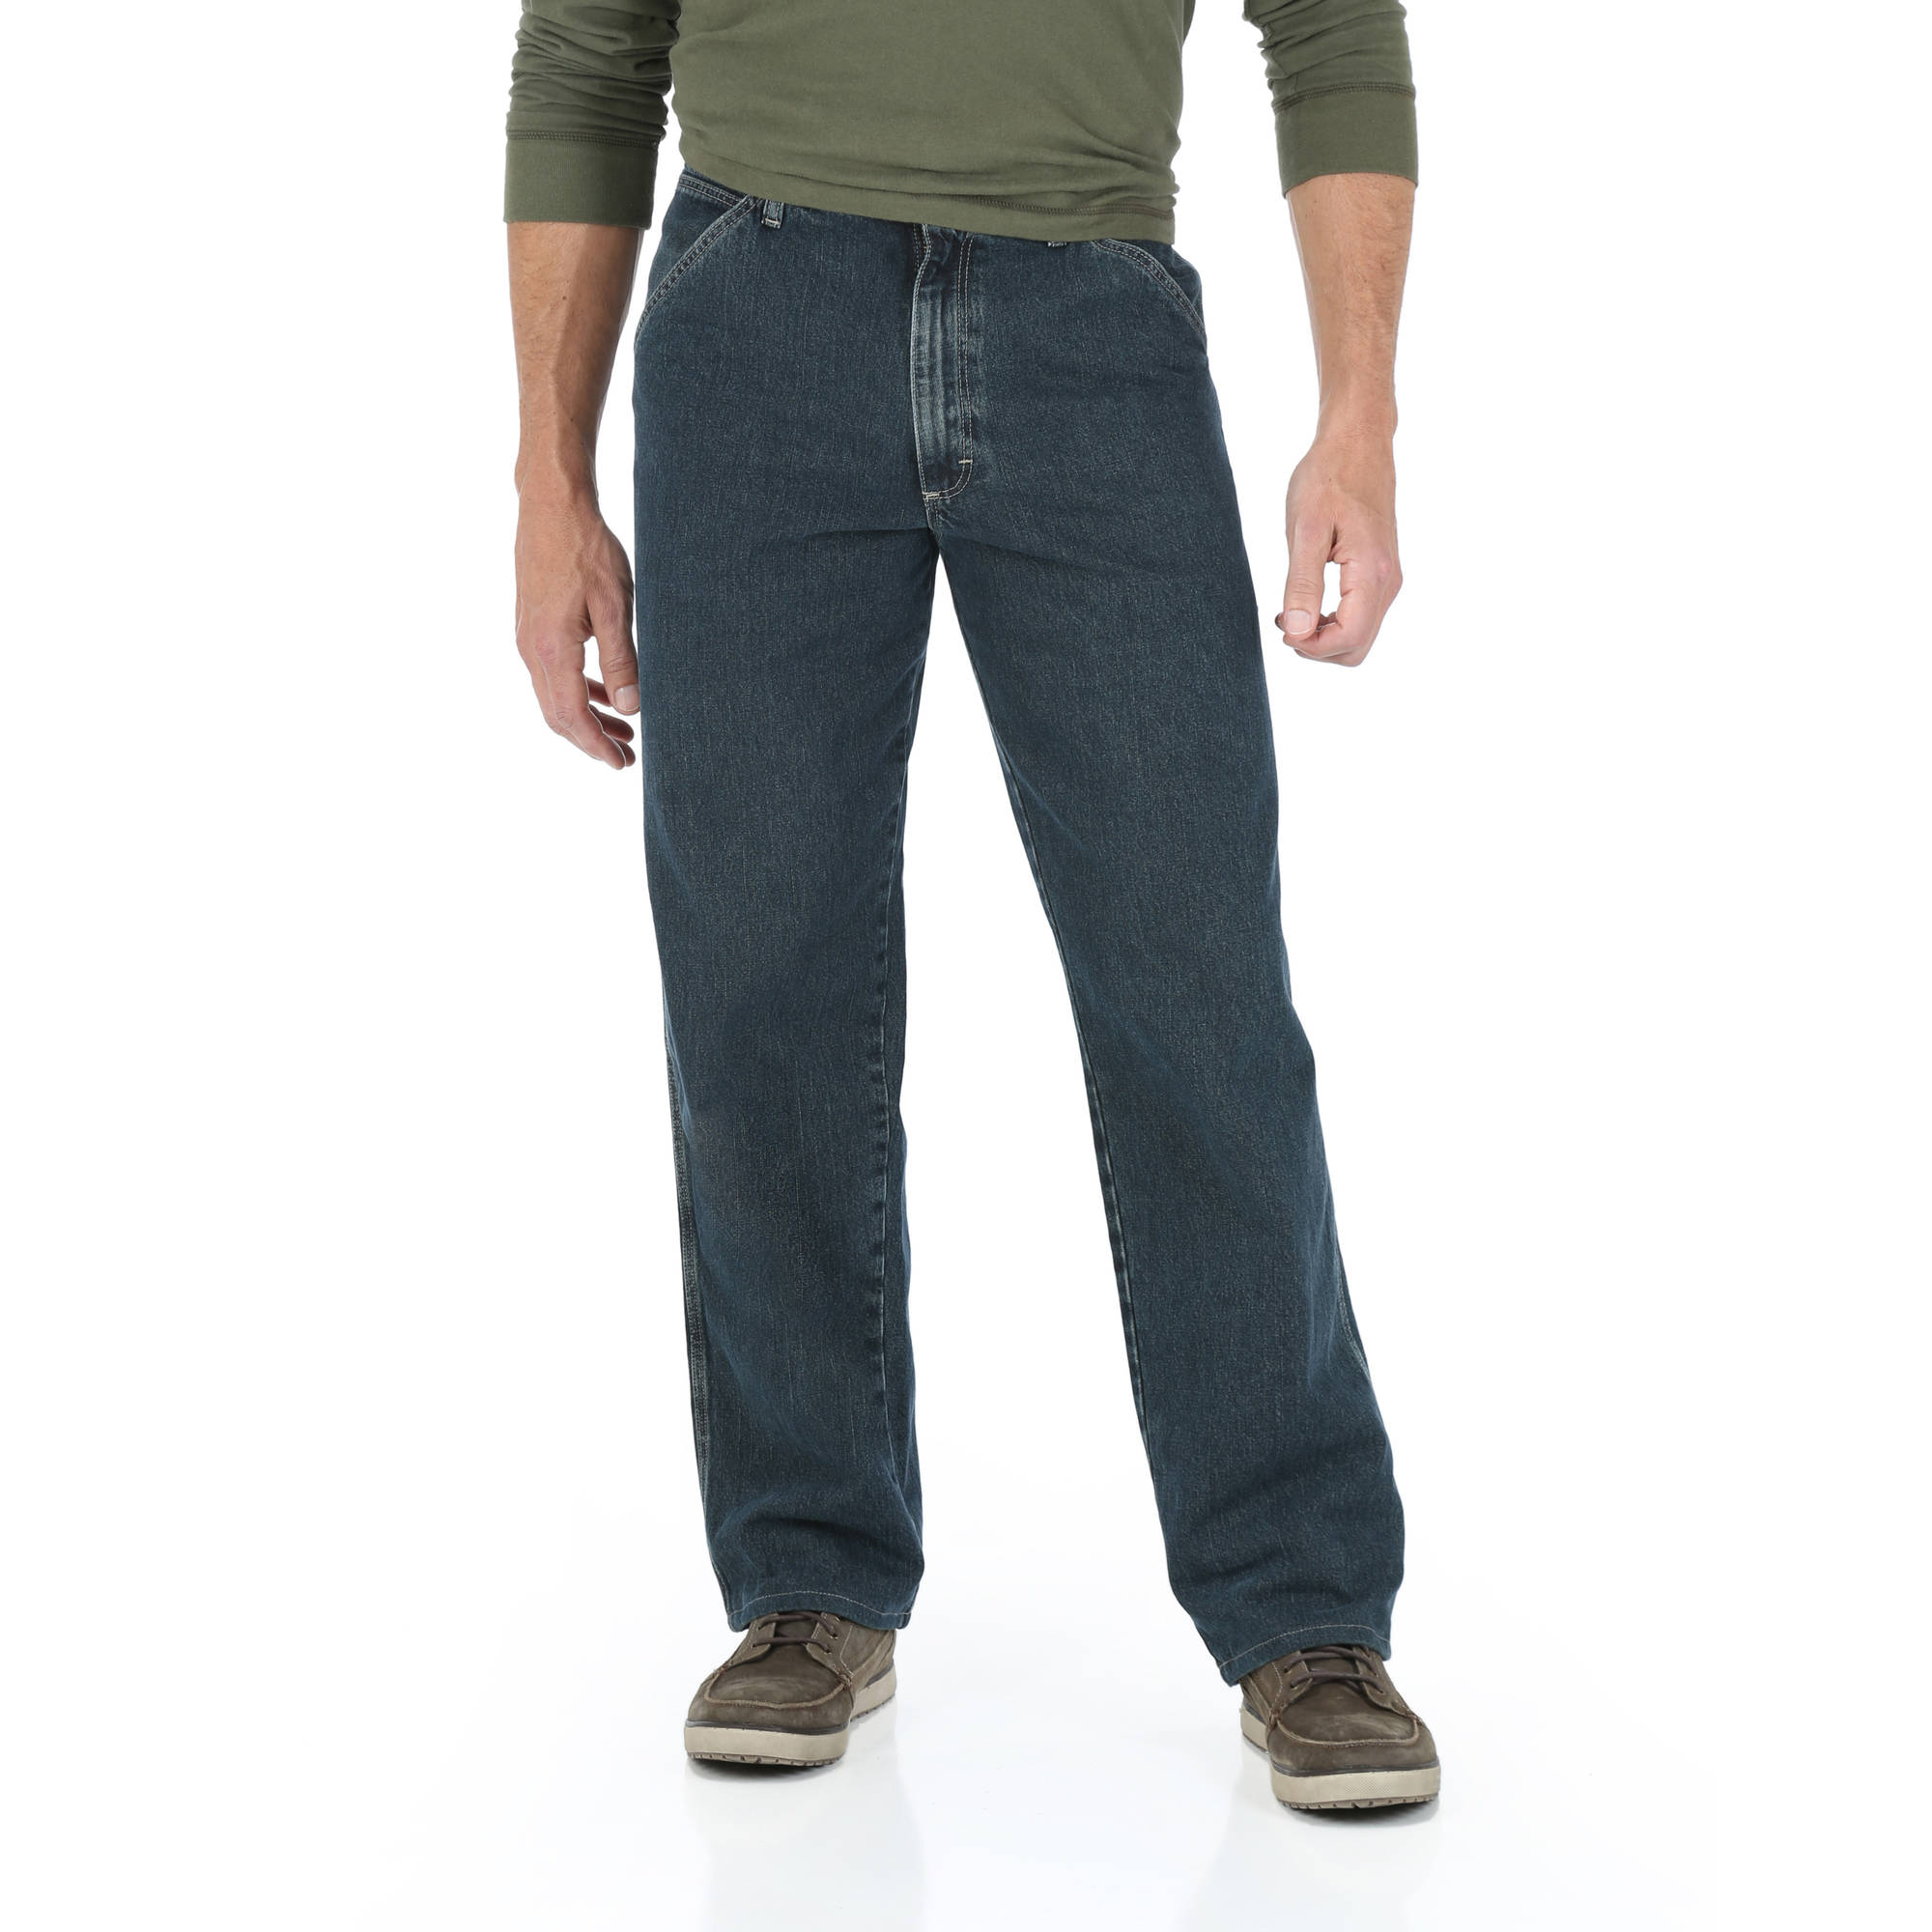 Wrangler - Big Men's Carpenter Fit Jeans